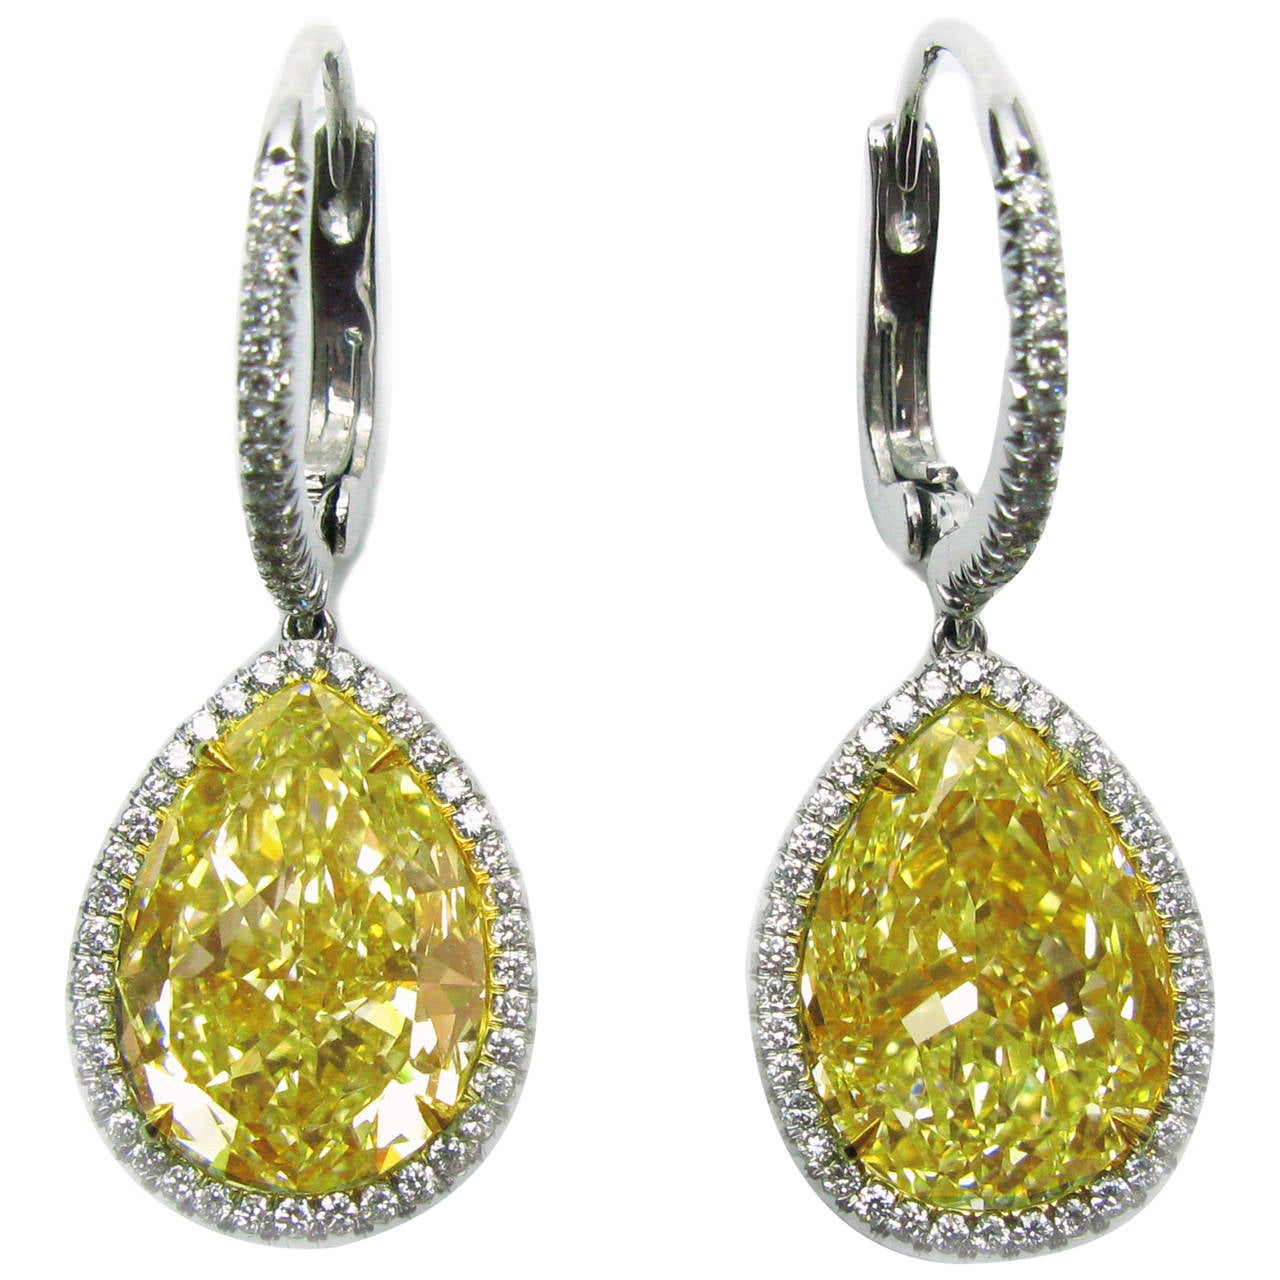 12.75 Carat GIA Cert Fancy Yellow Pear Diamond Leverback Earrings 1